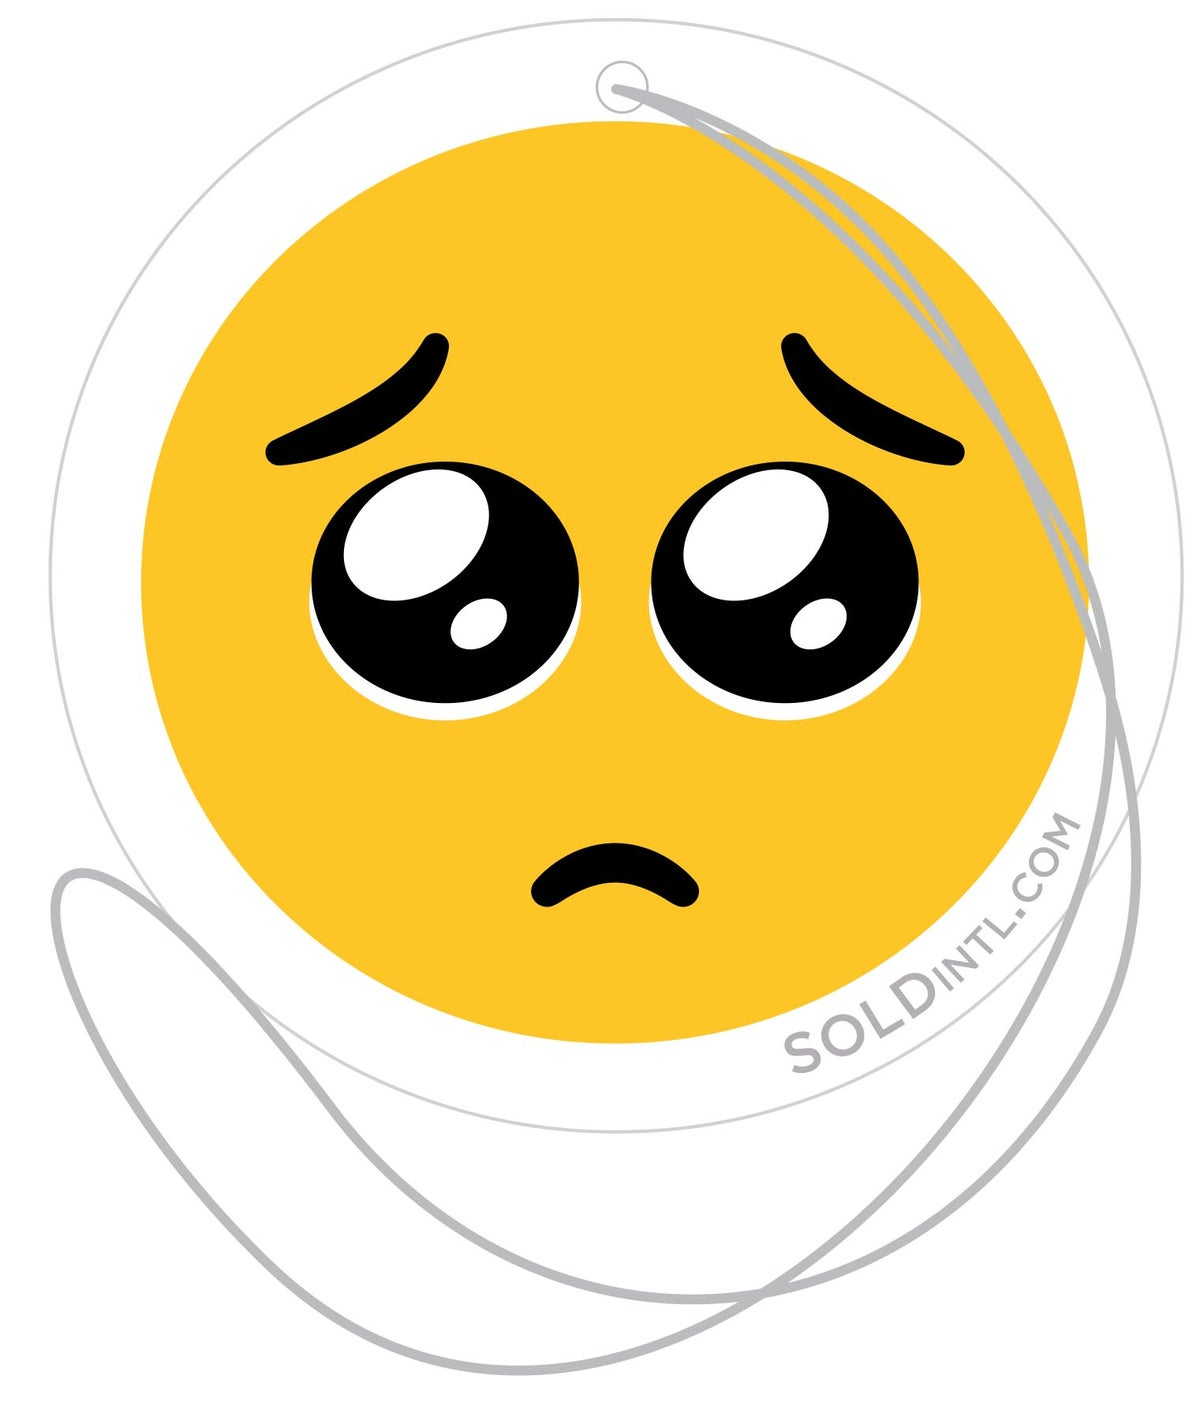 Image of Sensitive Emoji